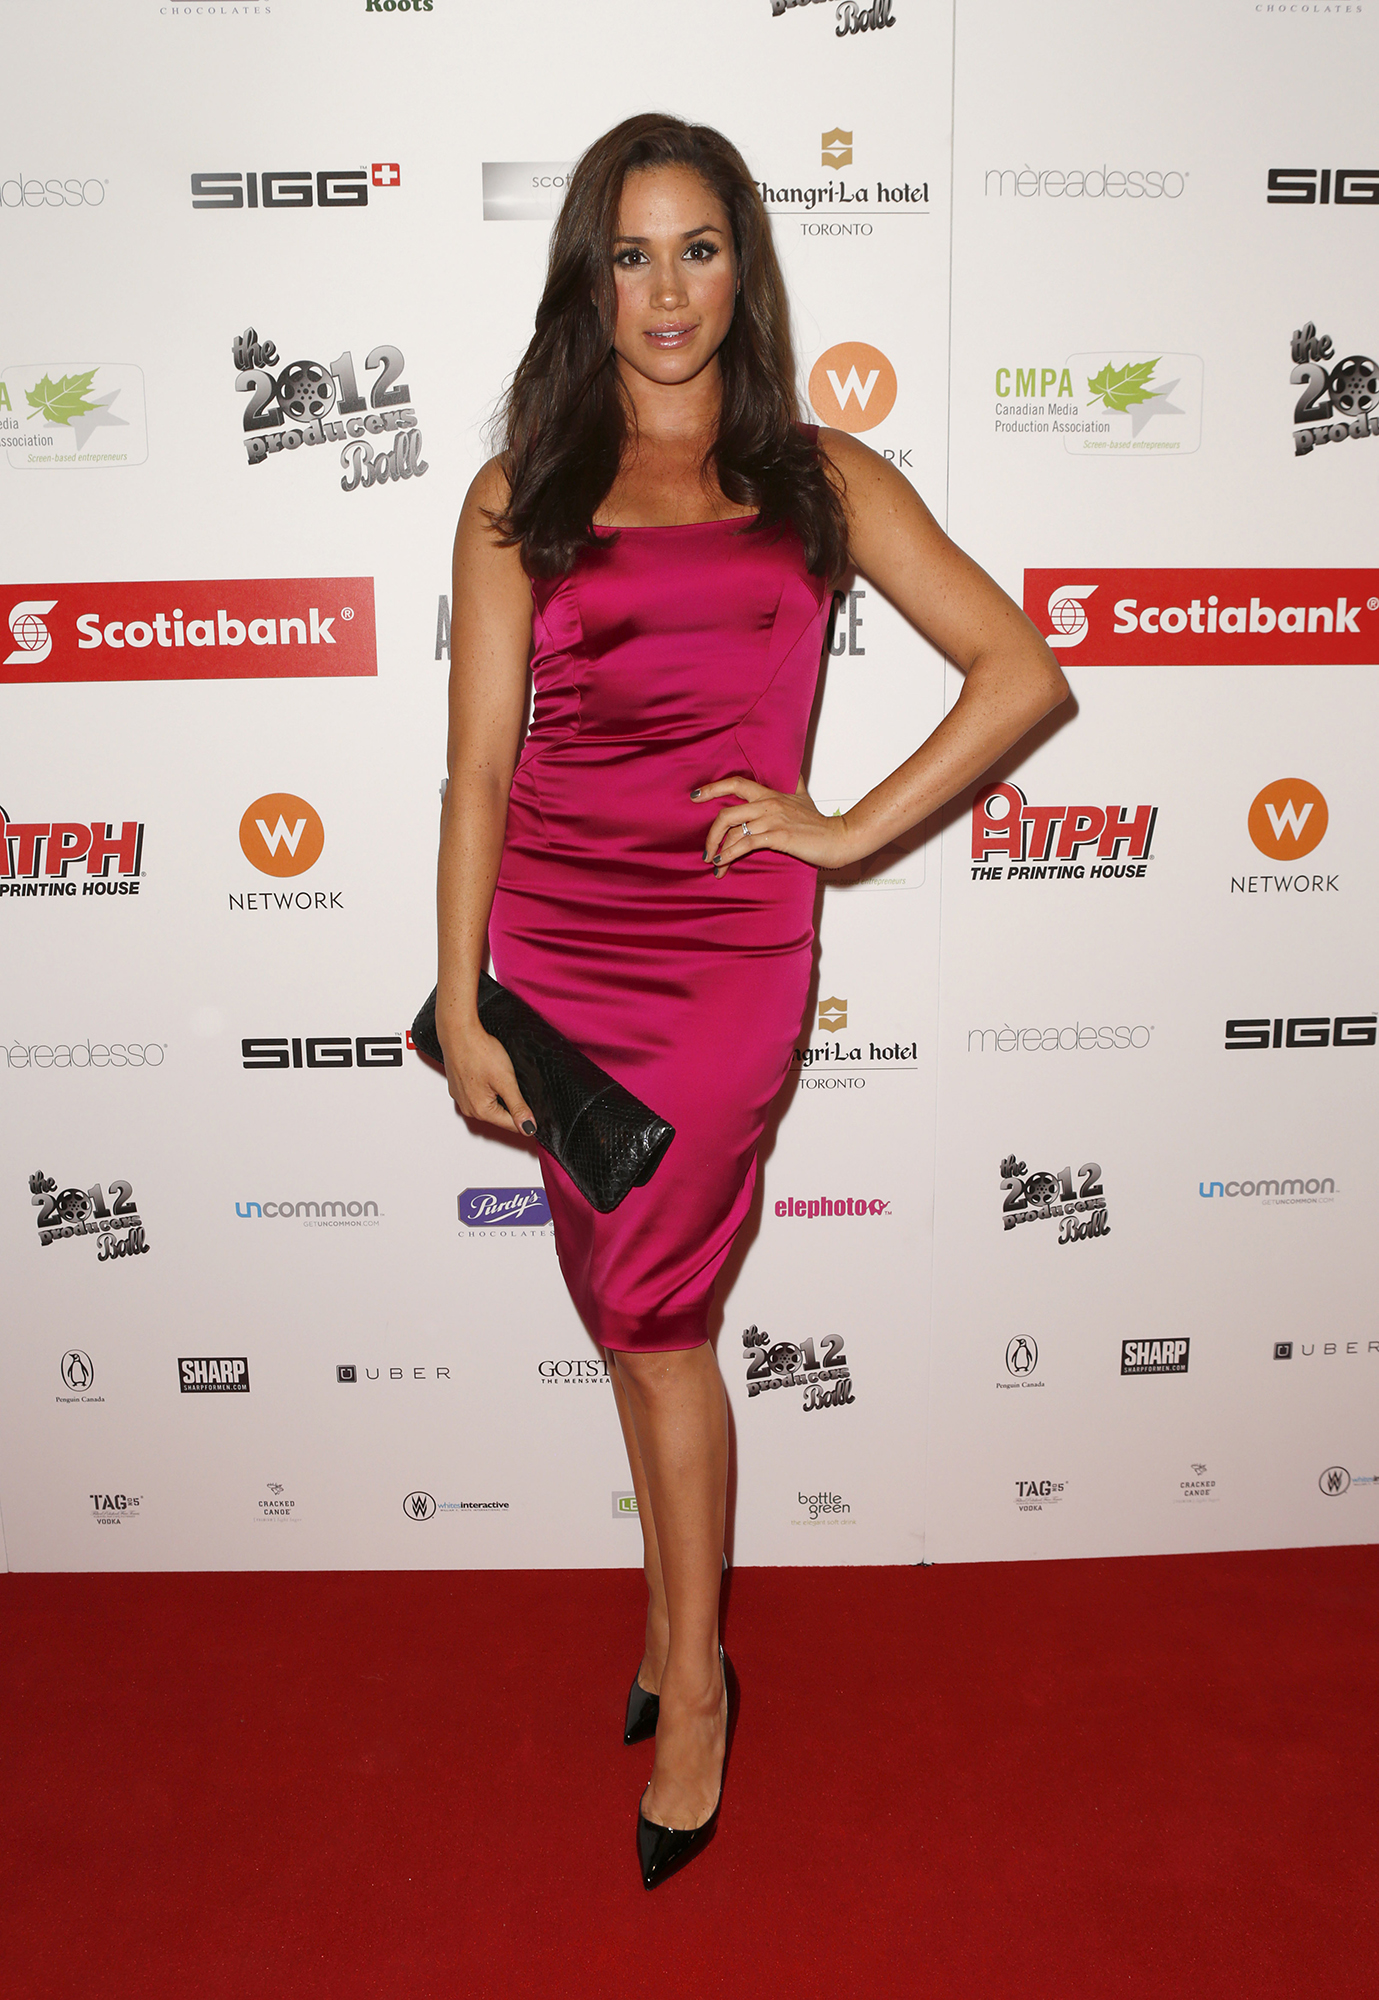 <div class='meta'><div class='origin-logo' data-origin='AP'></div><span class='caption-text' data-credit='Todd Williamson/Invision/AP'>Meghan Markle attends the Producers Ball 2012 at the Shangri-La Toronto on Wednesday Sept. 5, 2012, in Toronto, Canada.</span></div>